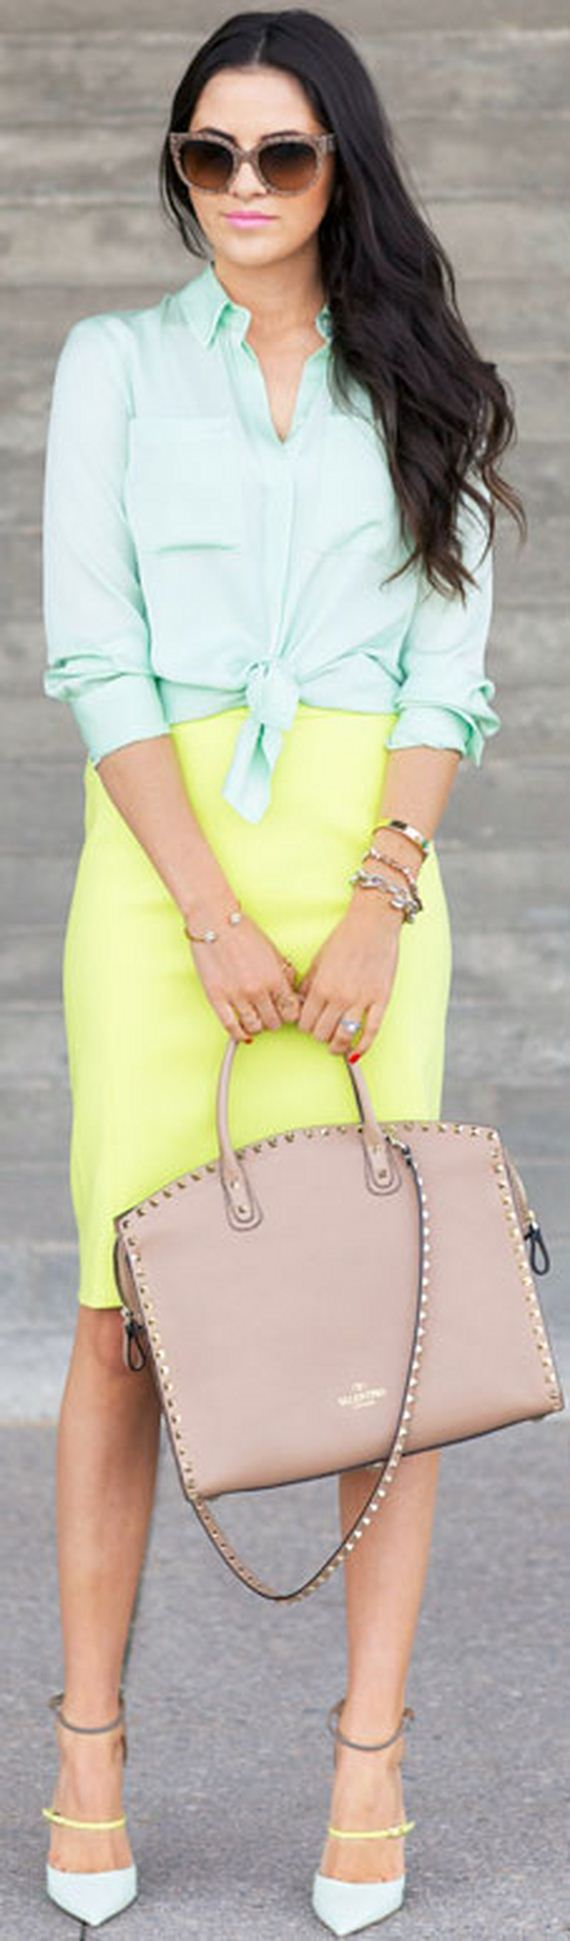 06-Cute-Summer-Outfits